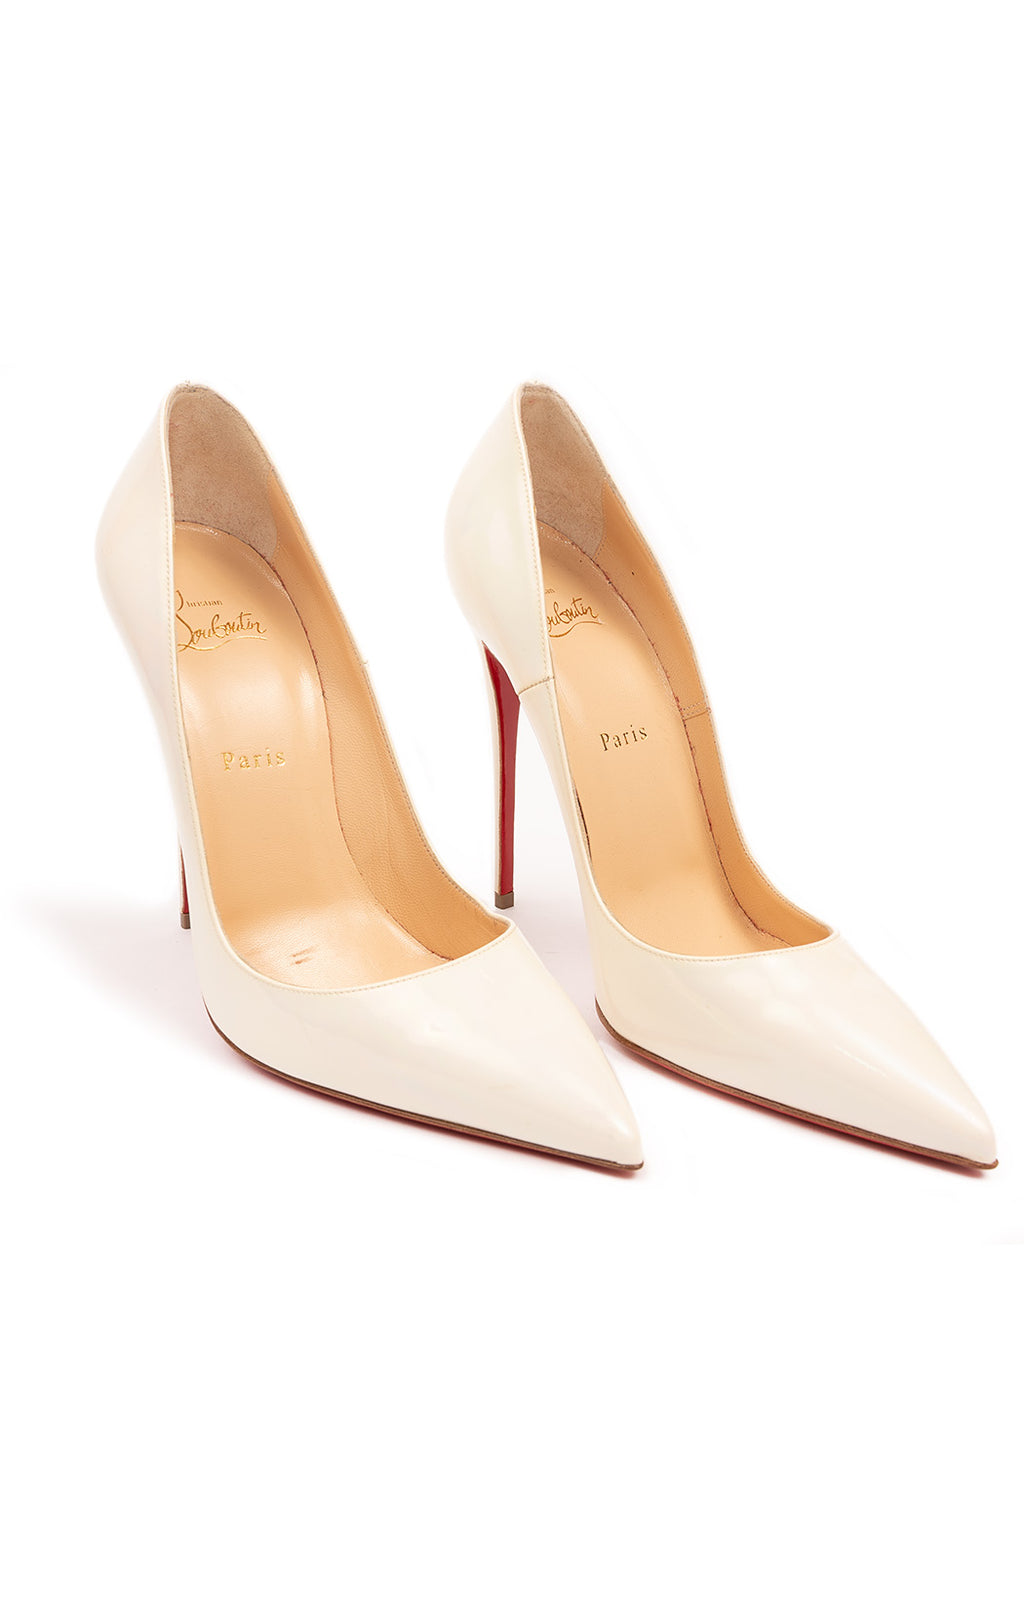 "Ivory classic pointed toe pump with 5"" heel"